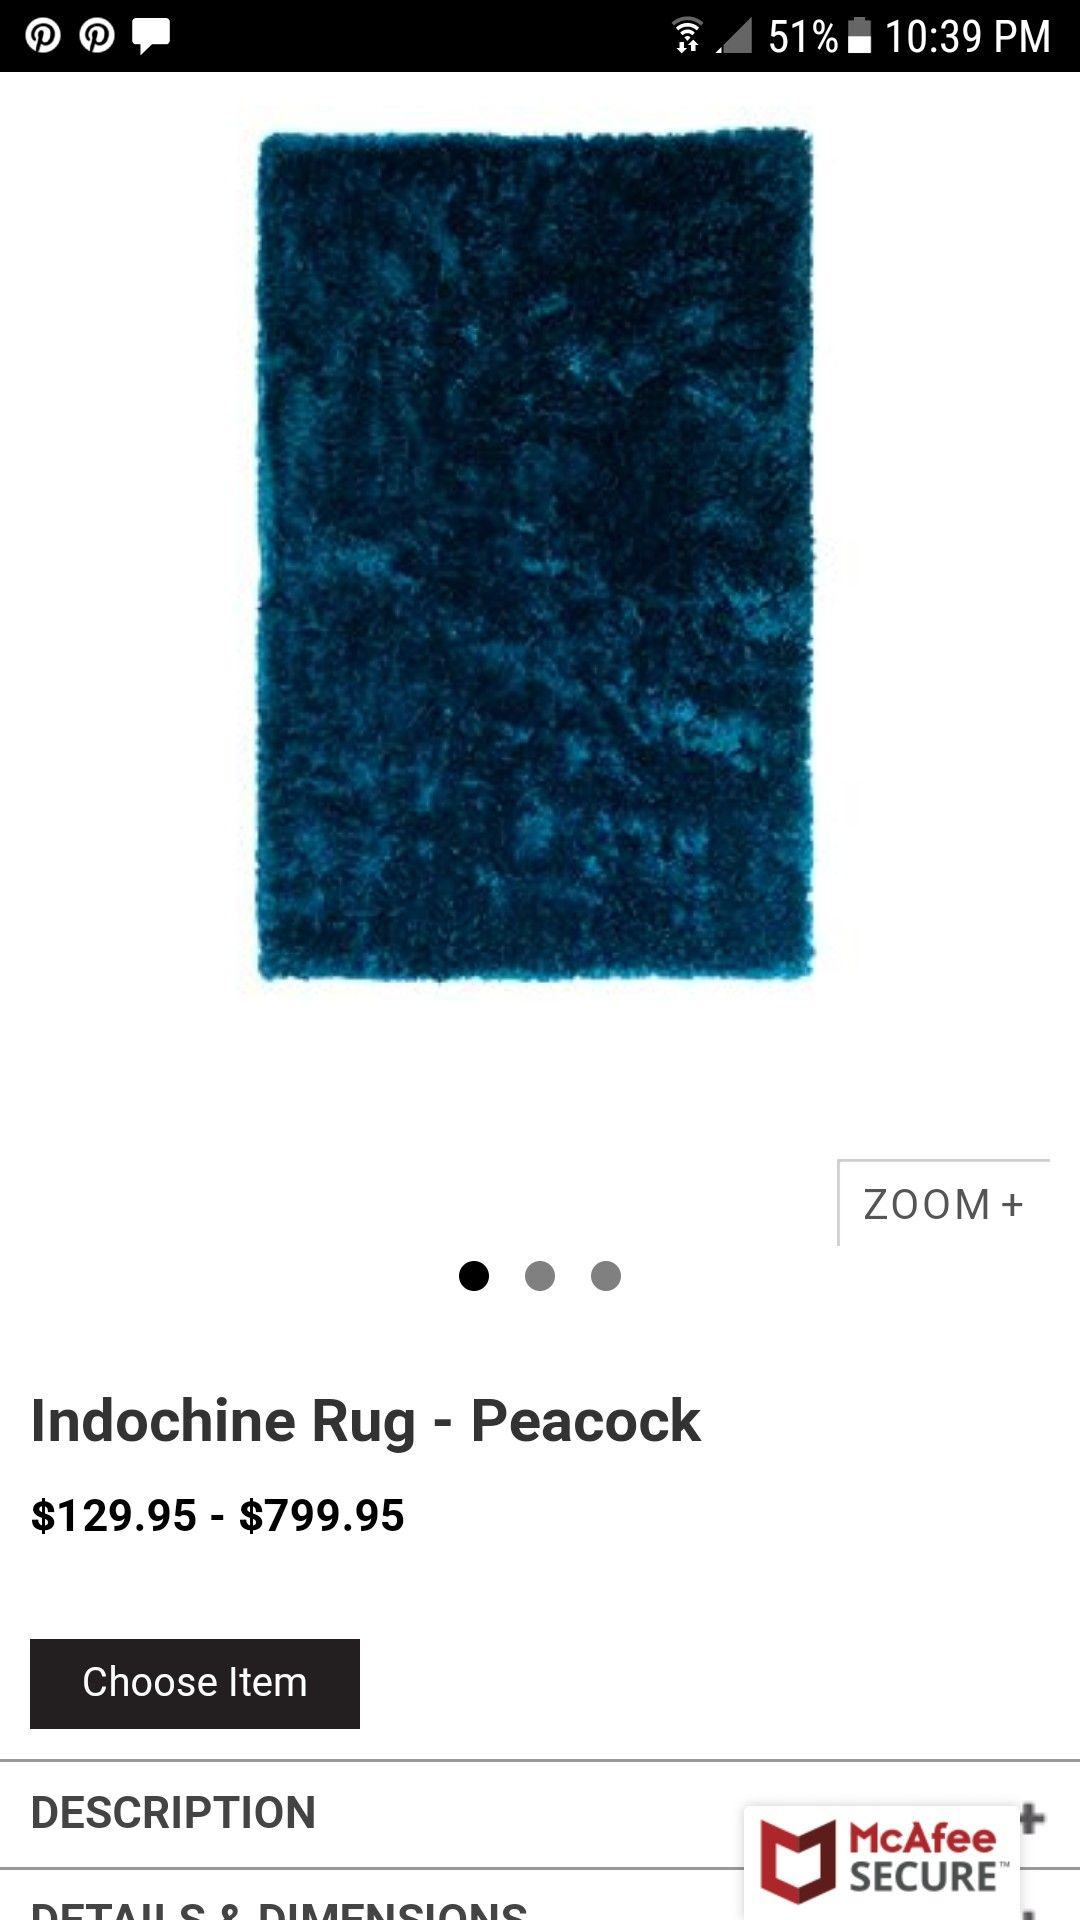 Z Gallerie Peacock Indochine Rug With Images Z